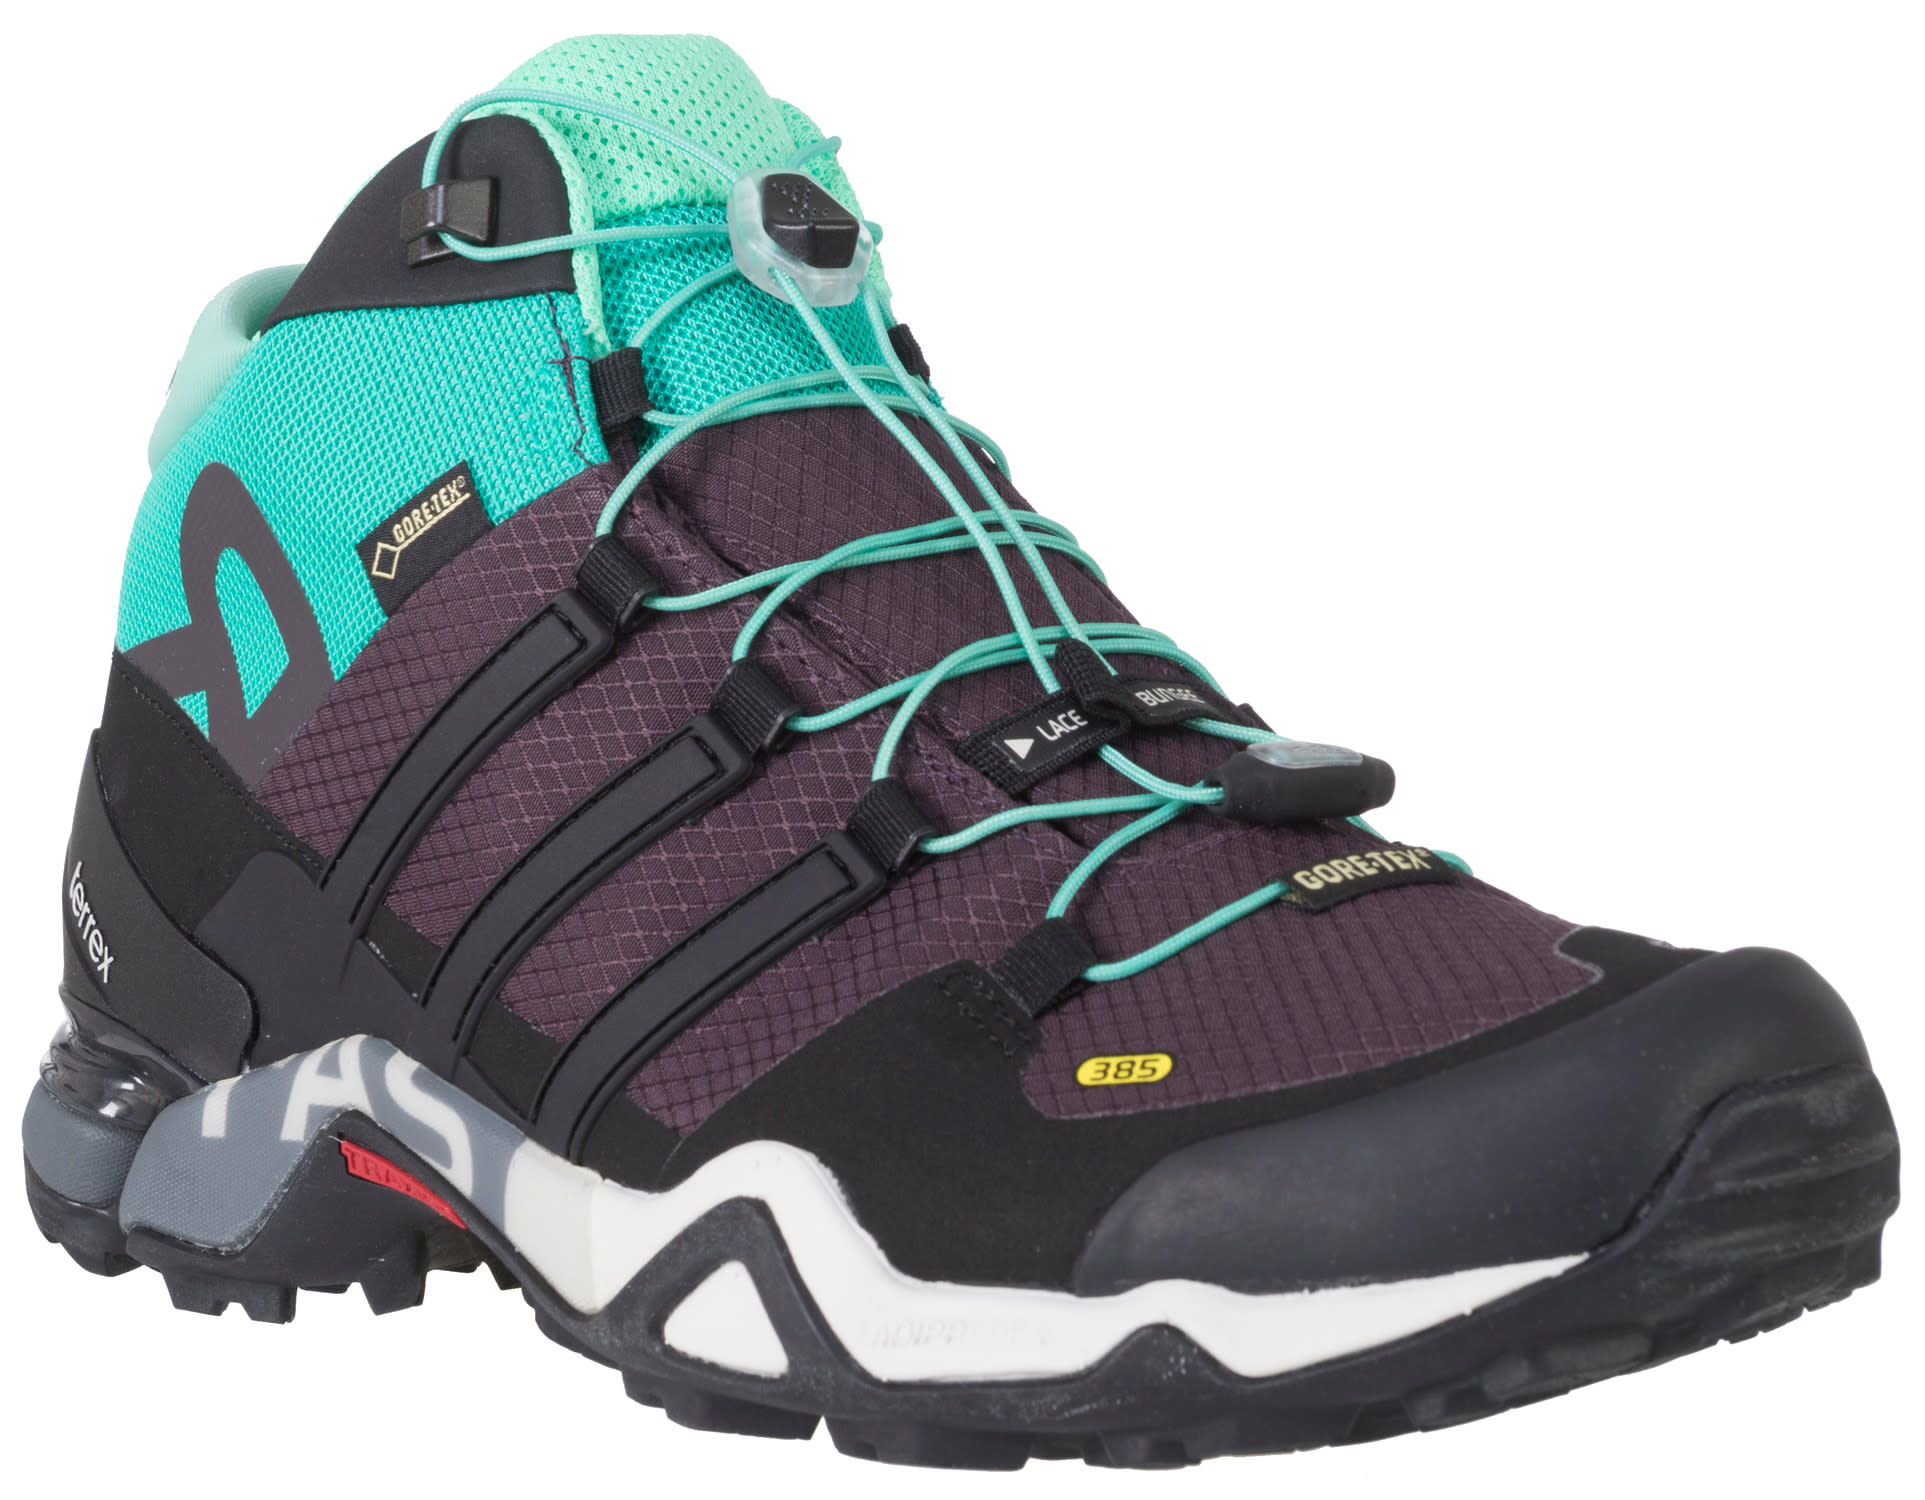 on sale adidas terrex fast r mid gtx hiking shoes womens up to 45 off. Black Bedroom Furniture Sets. Home Design Ideas